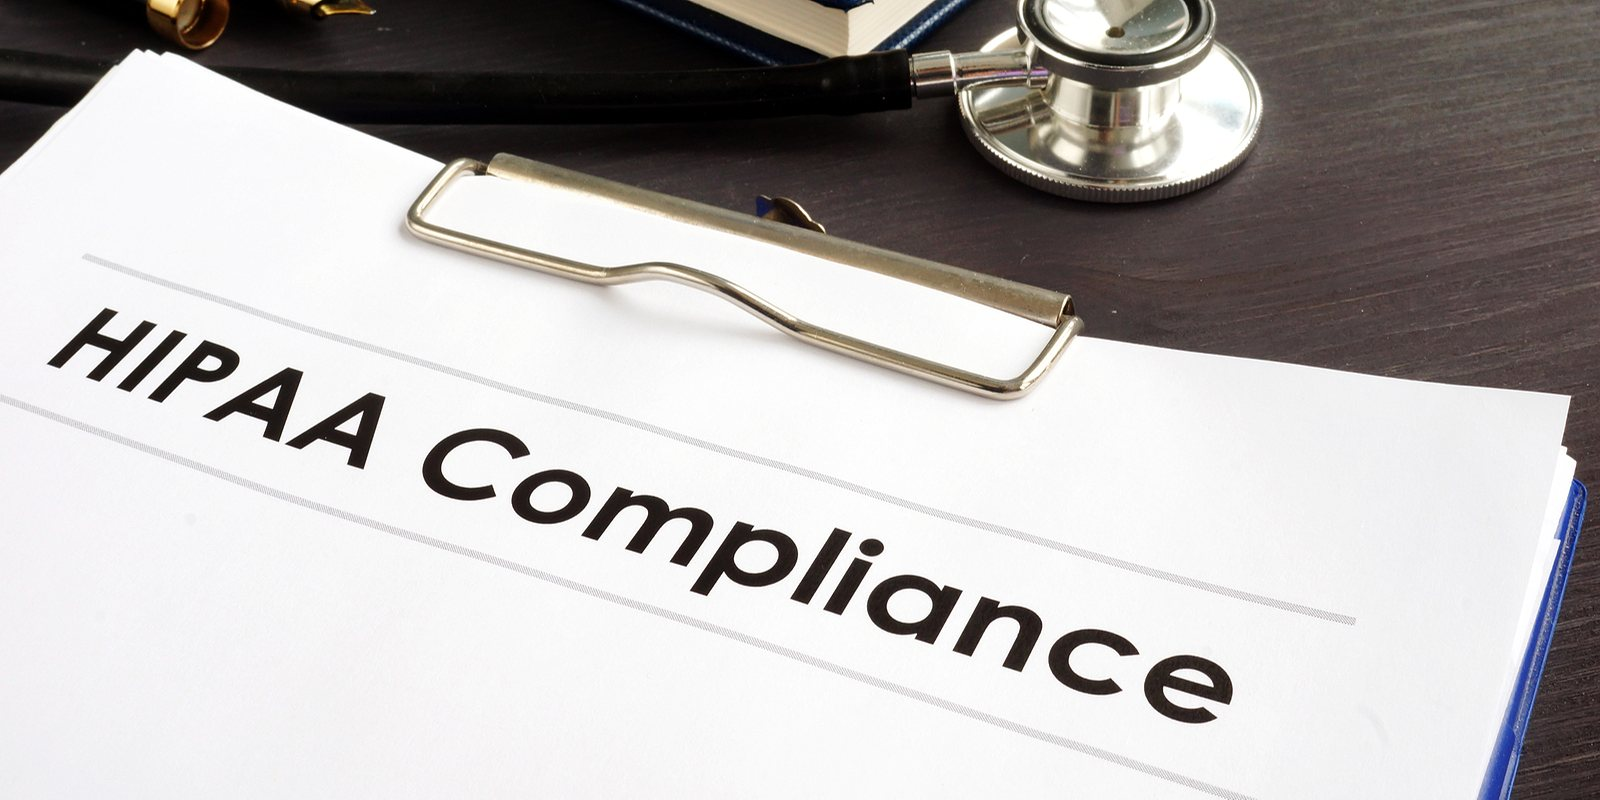 HIPAA Compliance documents with clipboard on a desk. HIPAA-compliant telehealth software improve internal workflow